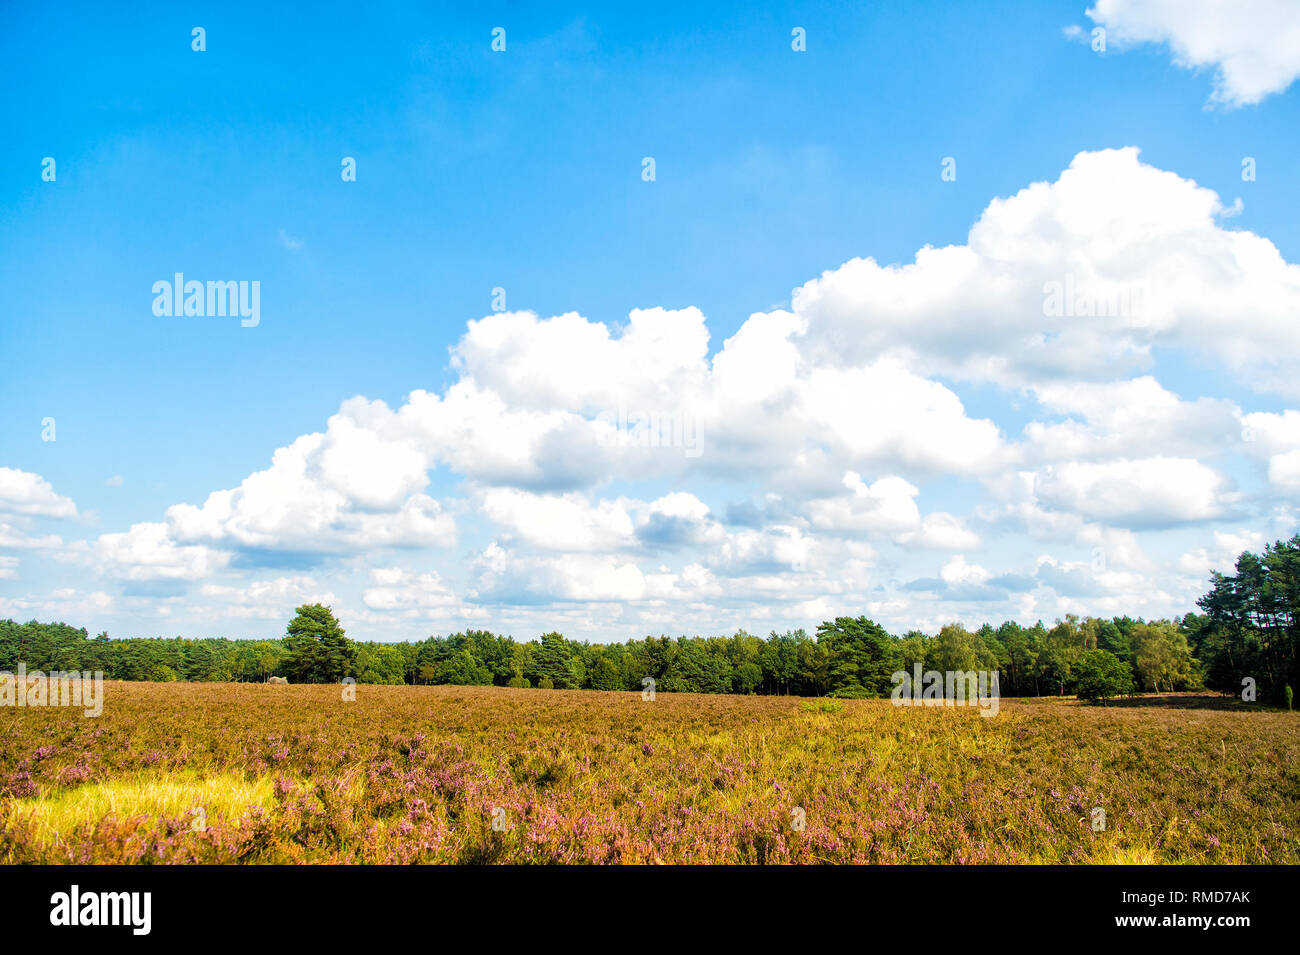 Heathland with flowering common heather (Calluna vulgaris) and an oak in the Lueneburg Heath (Lueneburger Heide) in Lower Saxony, Germany. Autumn field and meadow concept Stock Photo